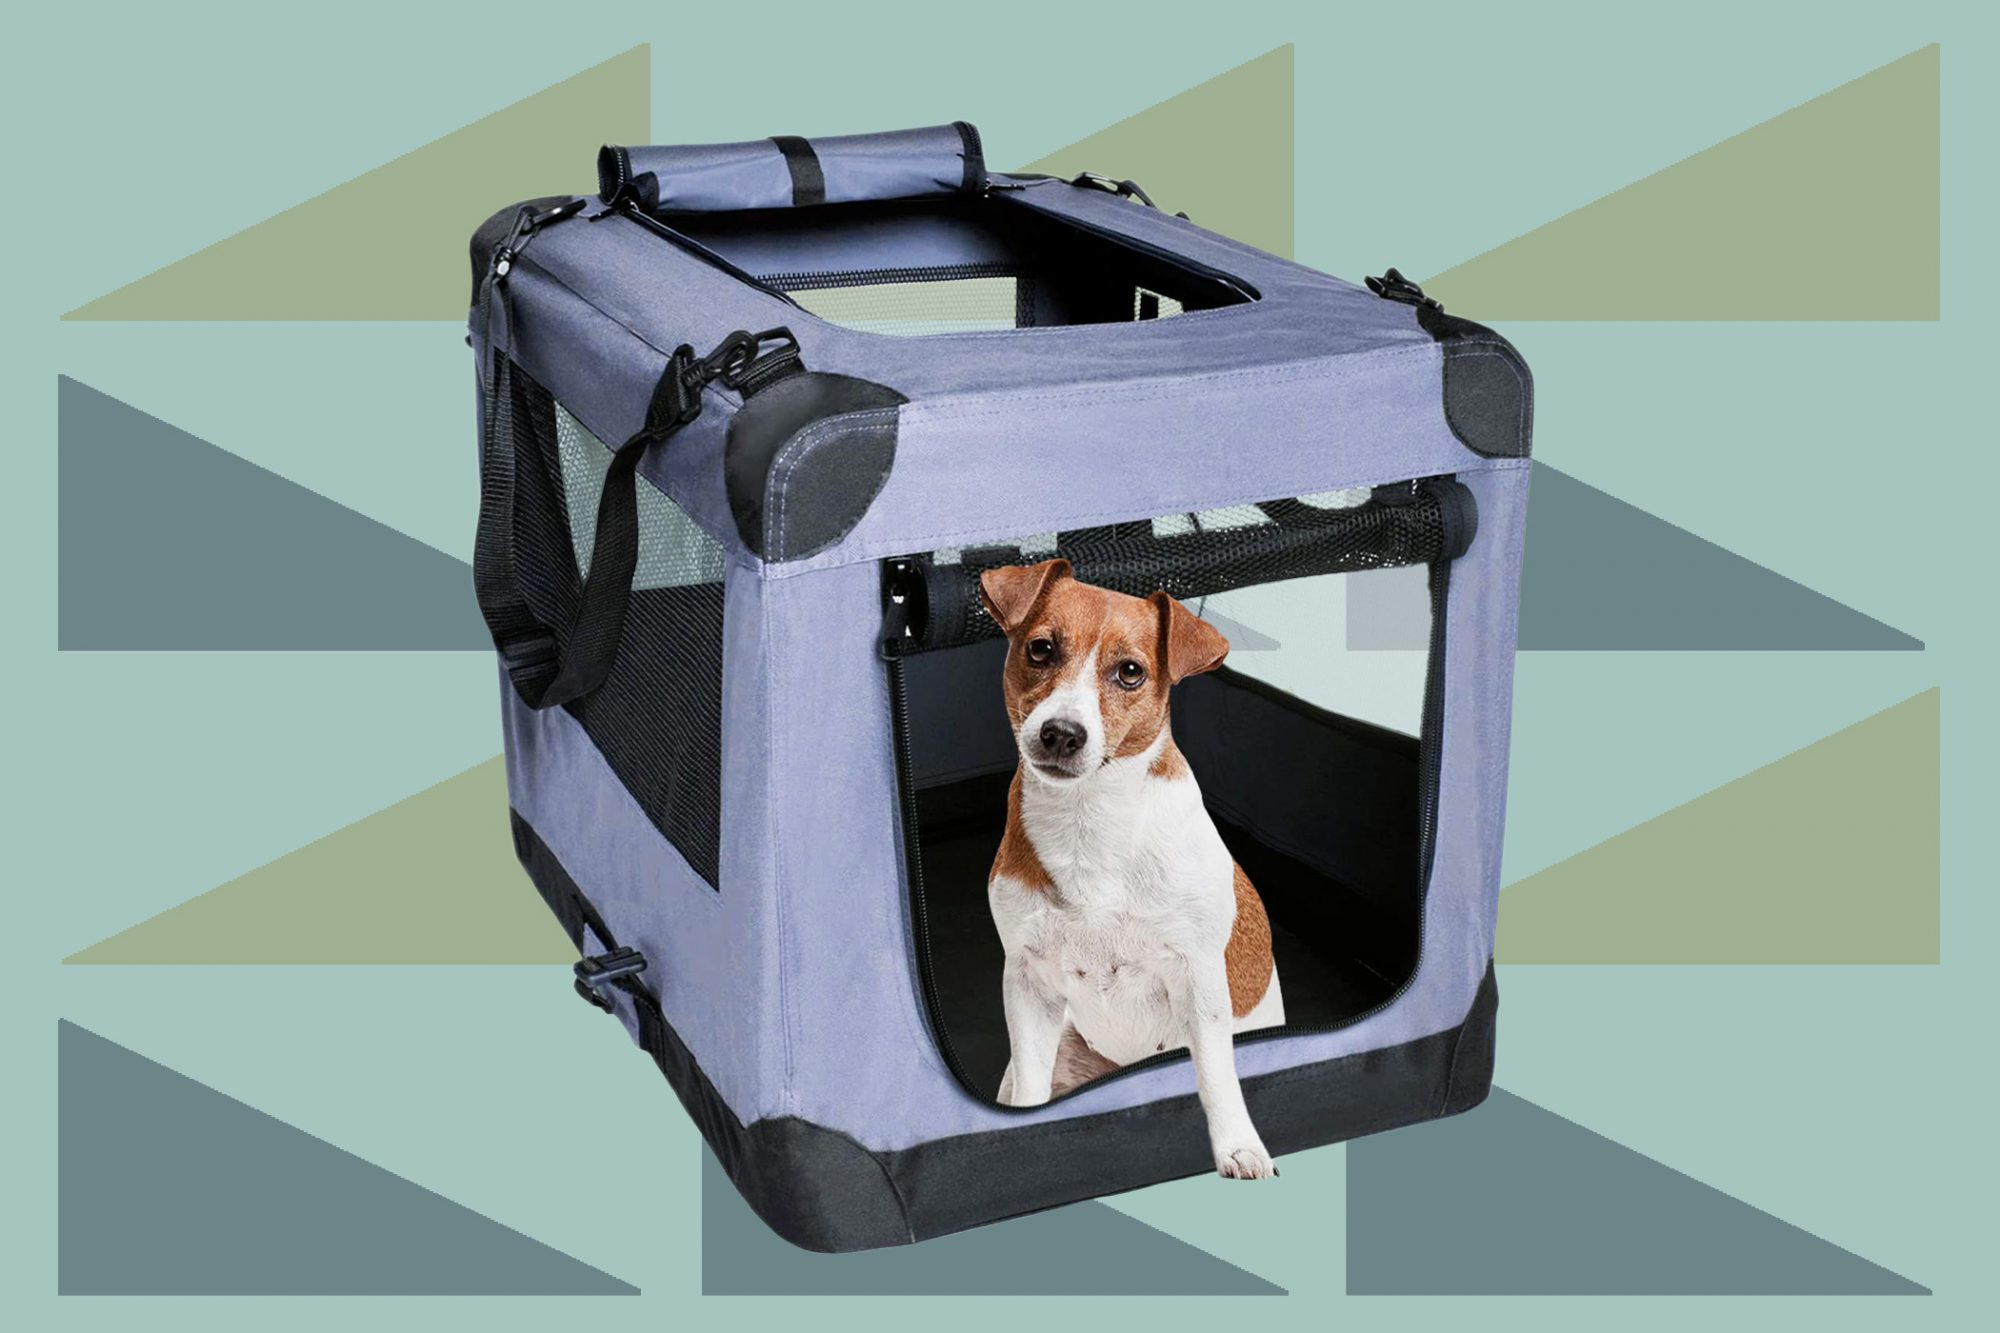 Jack russell terrier sits inside indigo dog travel crate